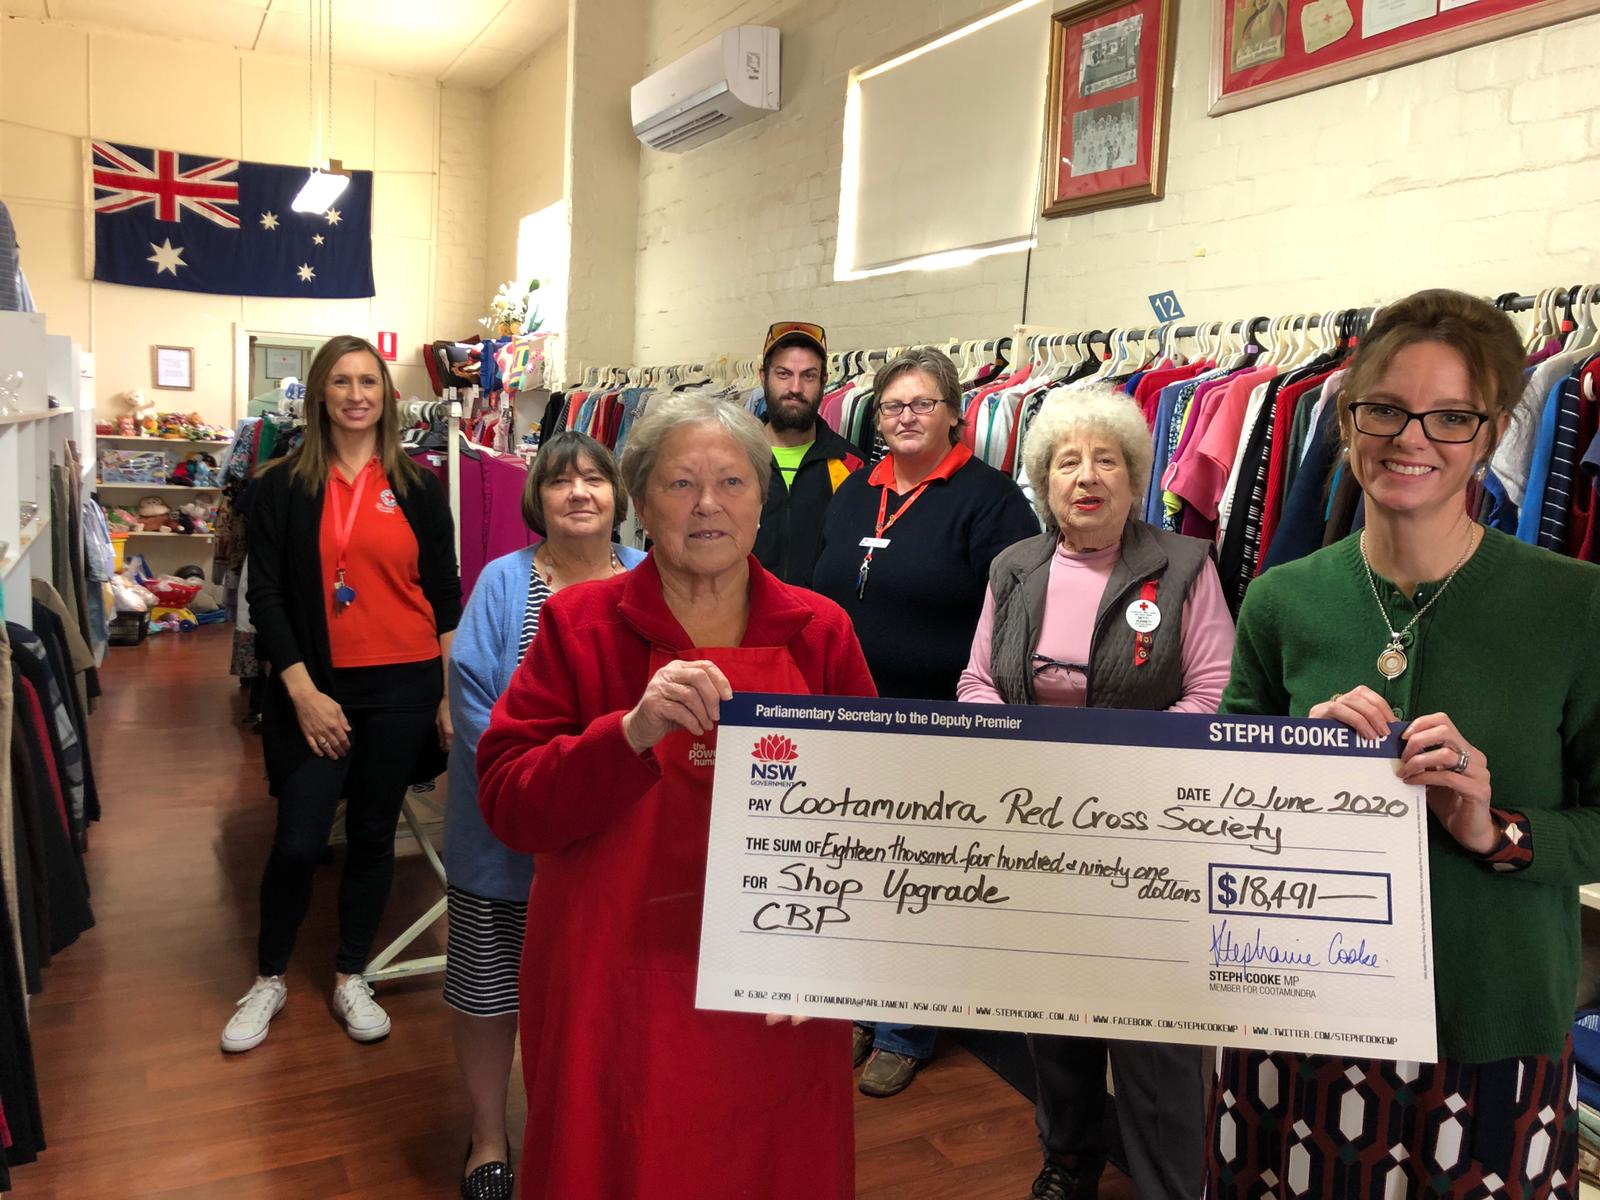 Megan Norton, Lois Jordan, Helen Ecckleston, Aaron Moore, Colina Meadows, Betti Punnett and Steph Cooke stand in front of a large rack of clothes and hold a novelty cheque.